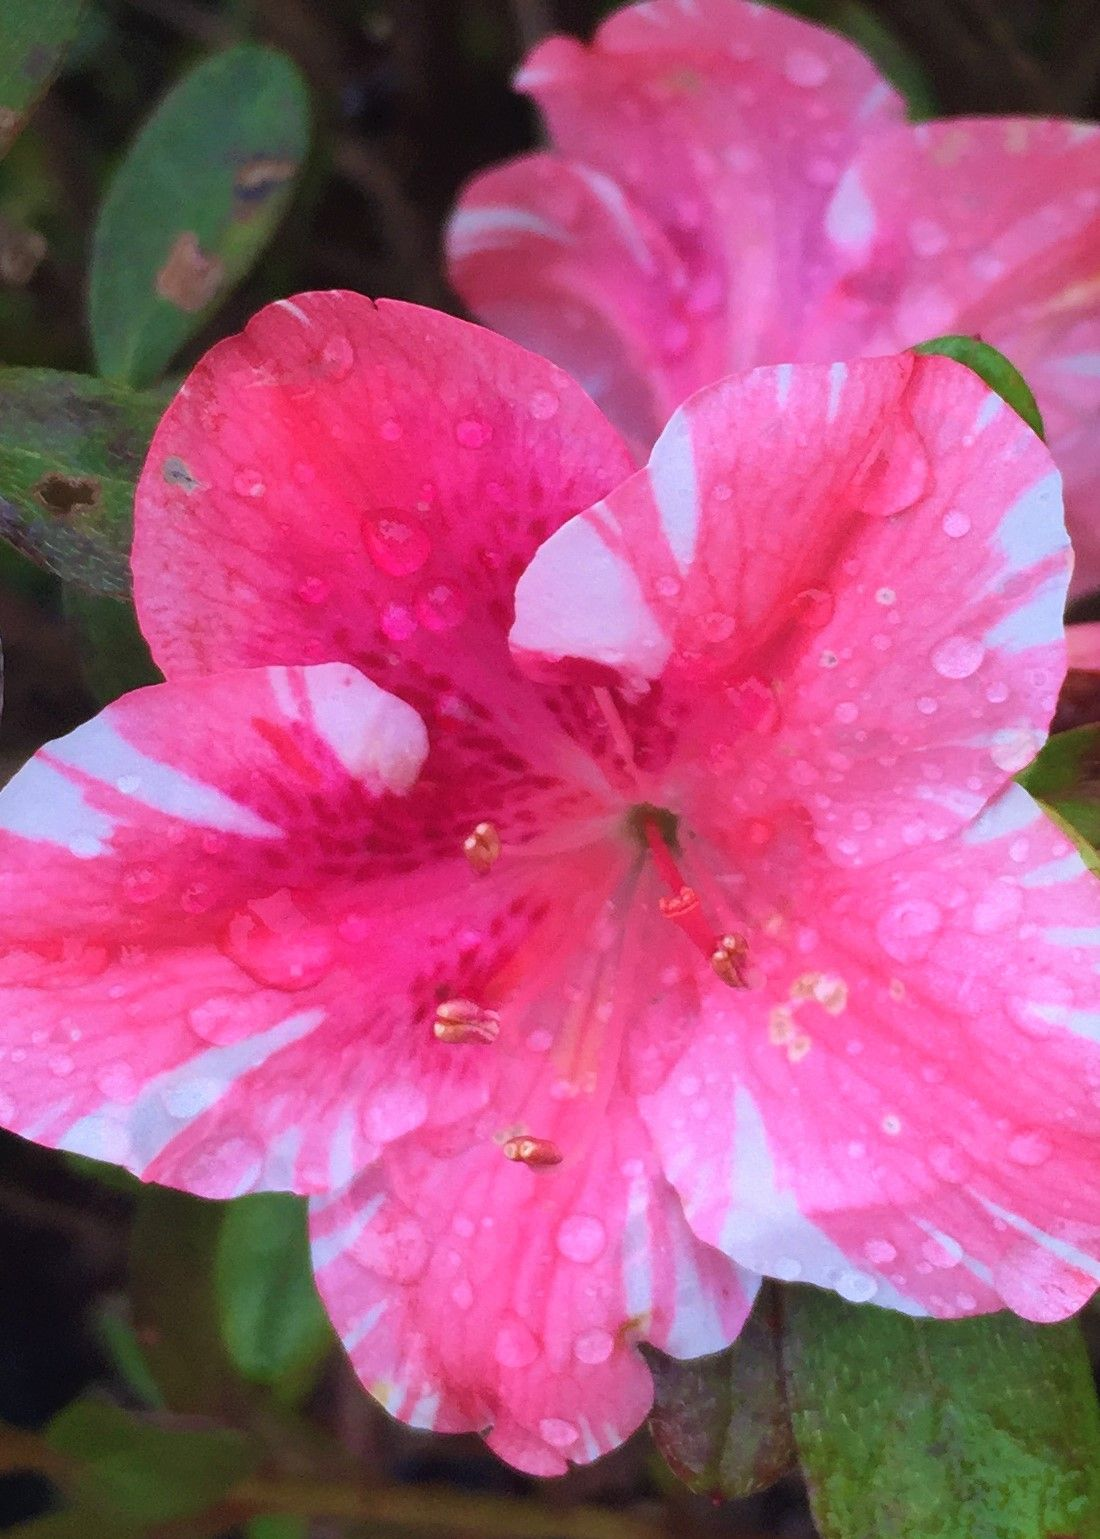 The Dogwood Azalea Is A Beautiful Spring Blooming Rhododendron This Selection Produces Bright White And Pink Variegated Trumpet Shaped B Azaleas Dogwood Bloom